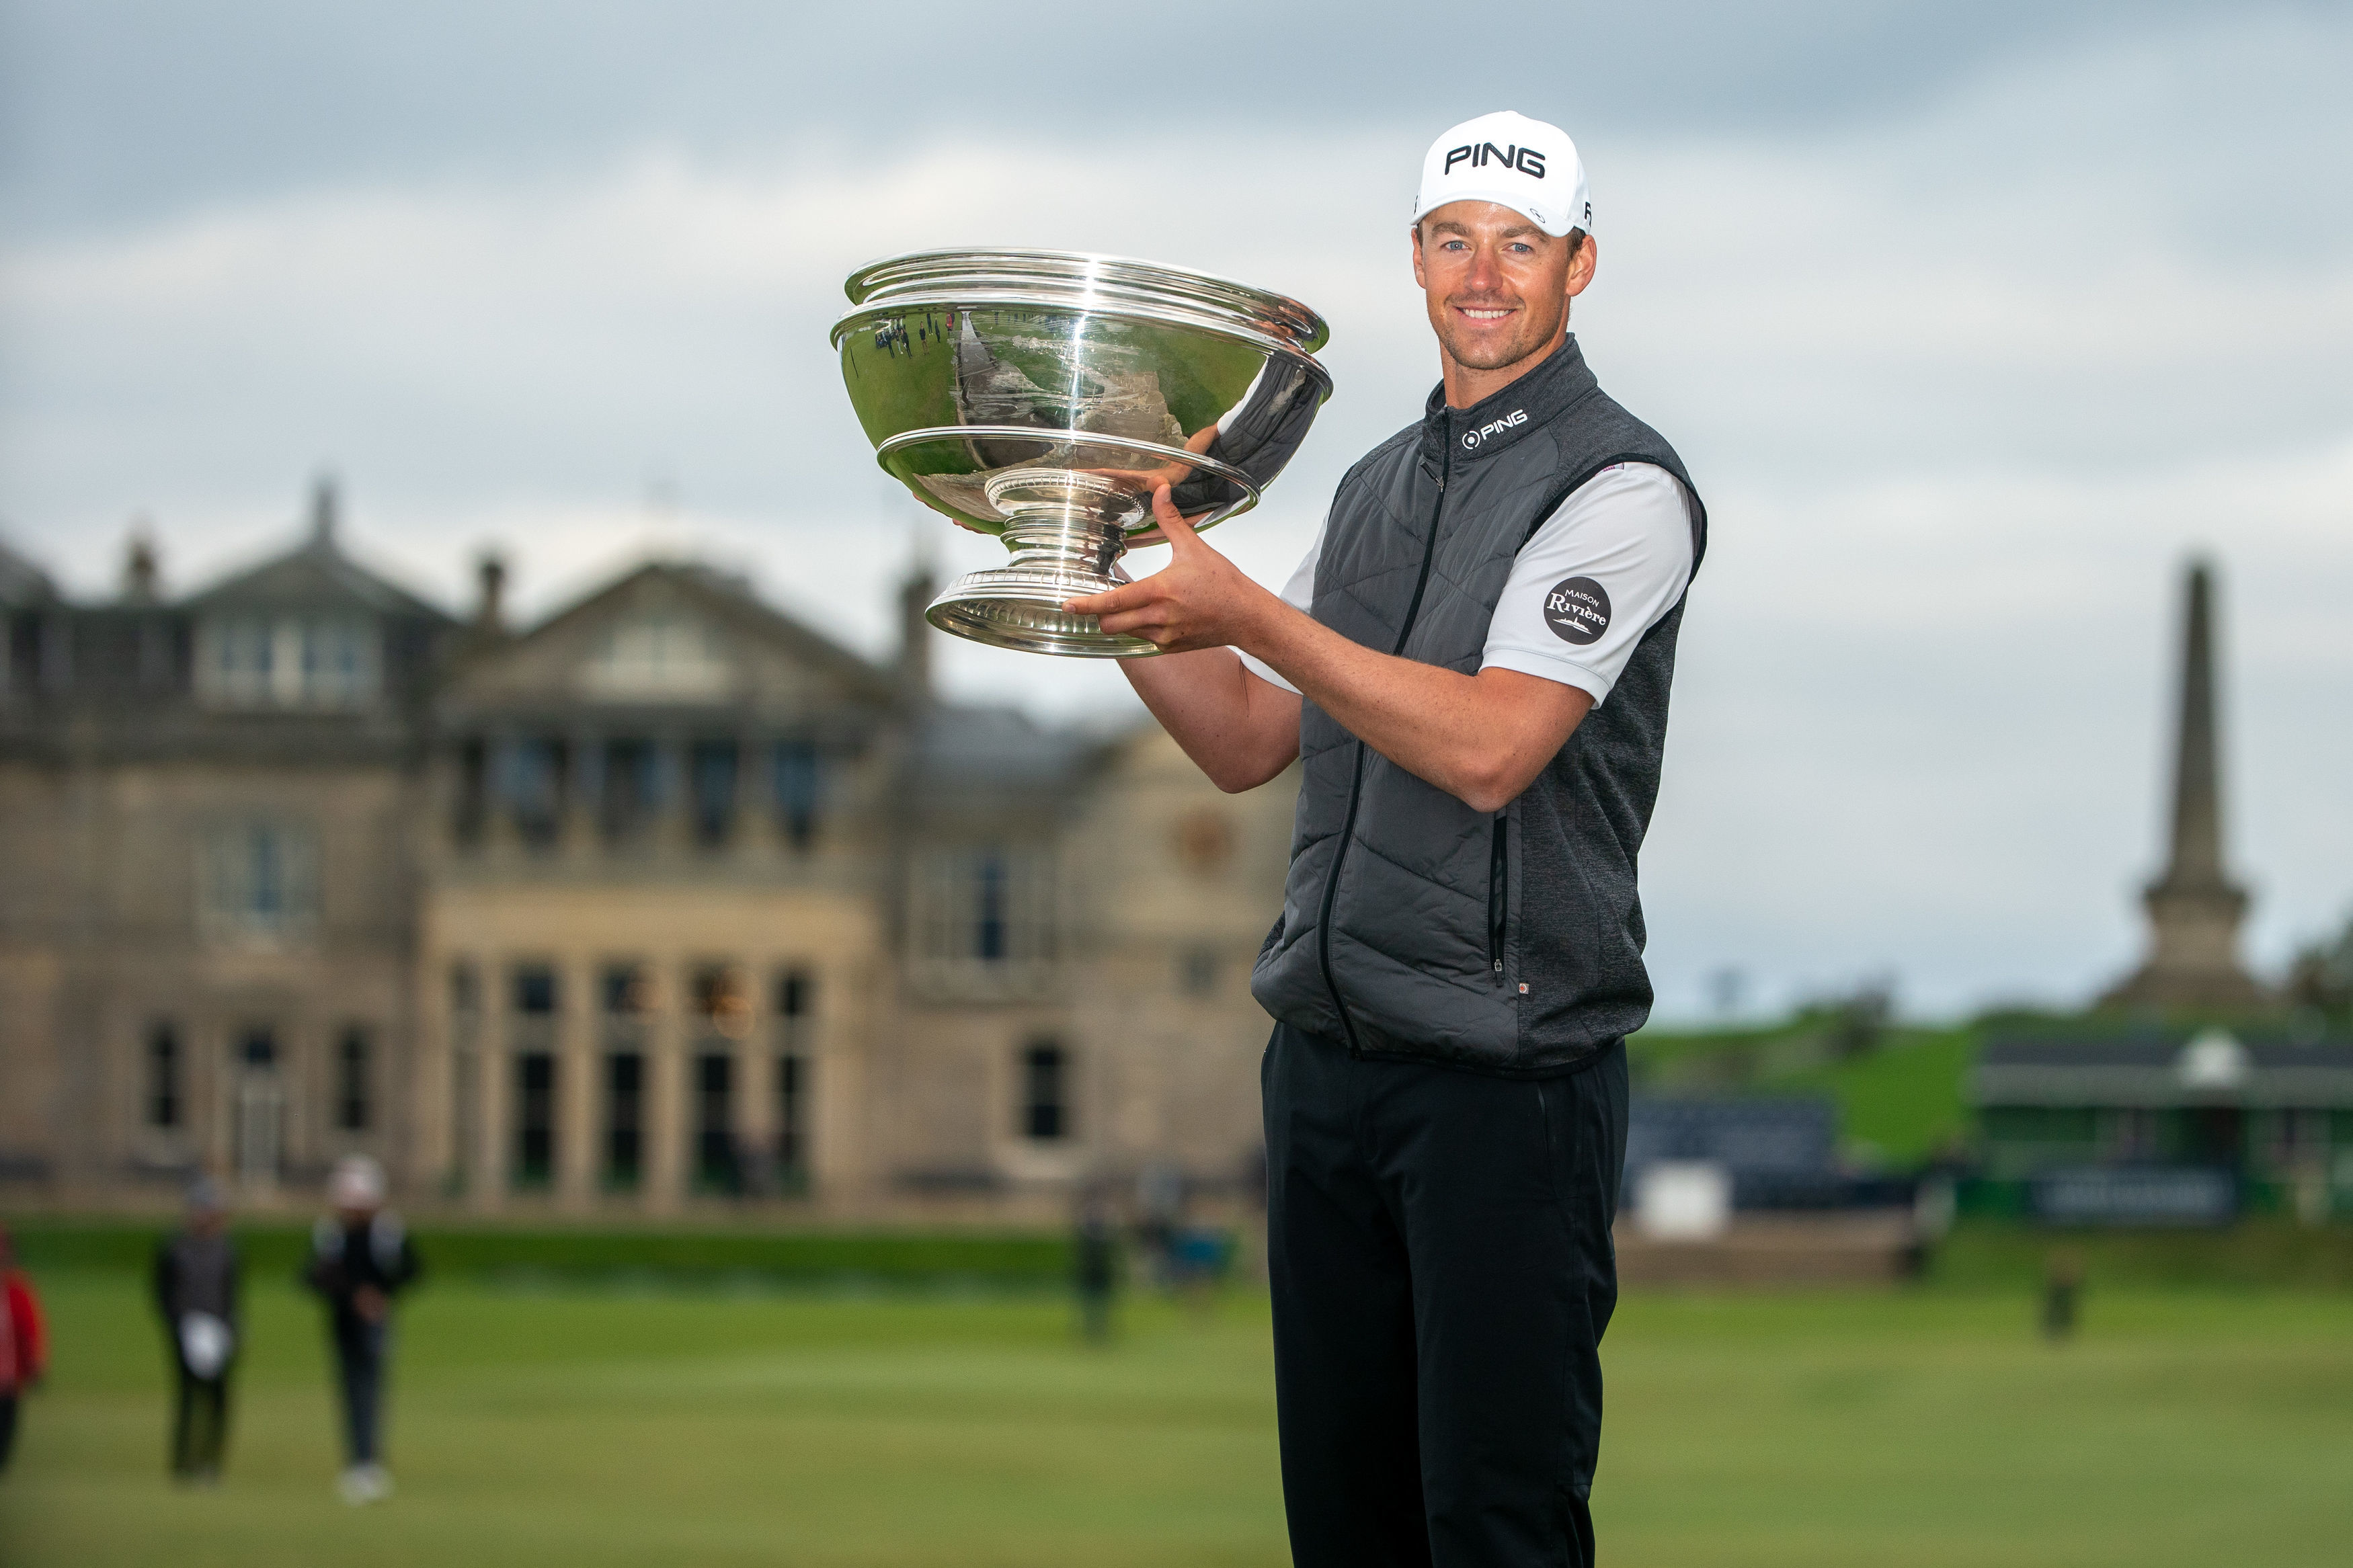 Victor Perez proudly shows off the trophy following his win during day four of the Alfred Dunhill Links Championship at St Andrews. PA Photo.